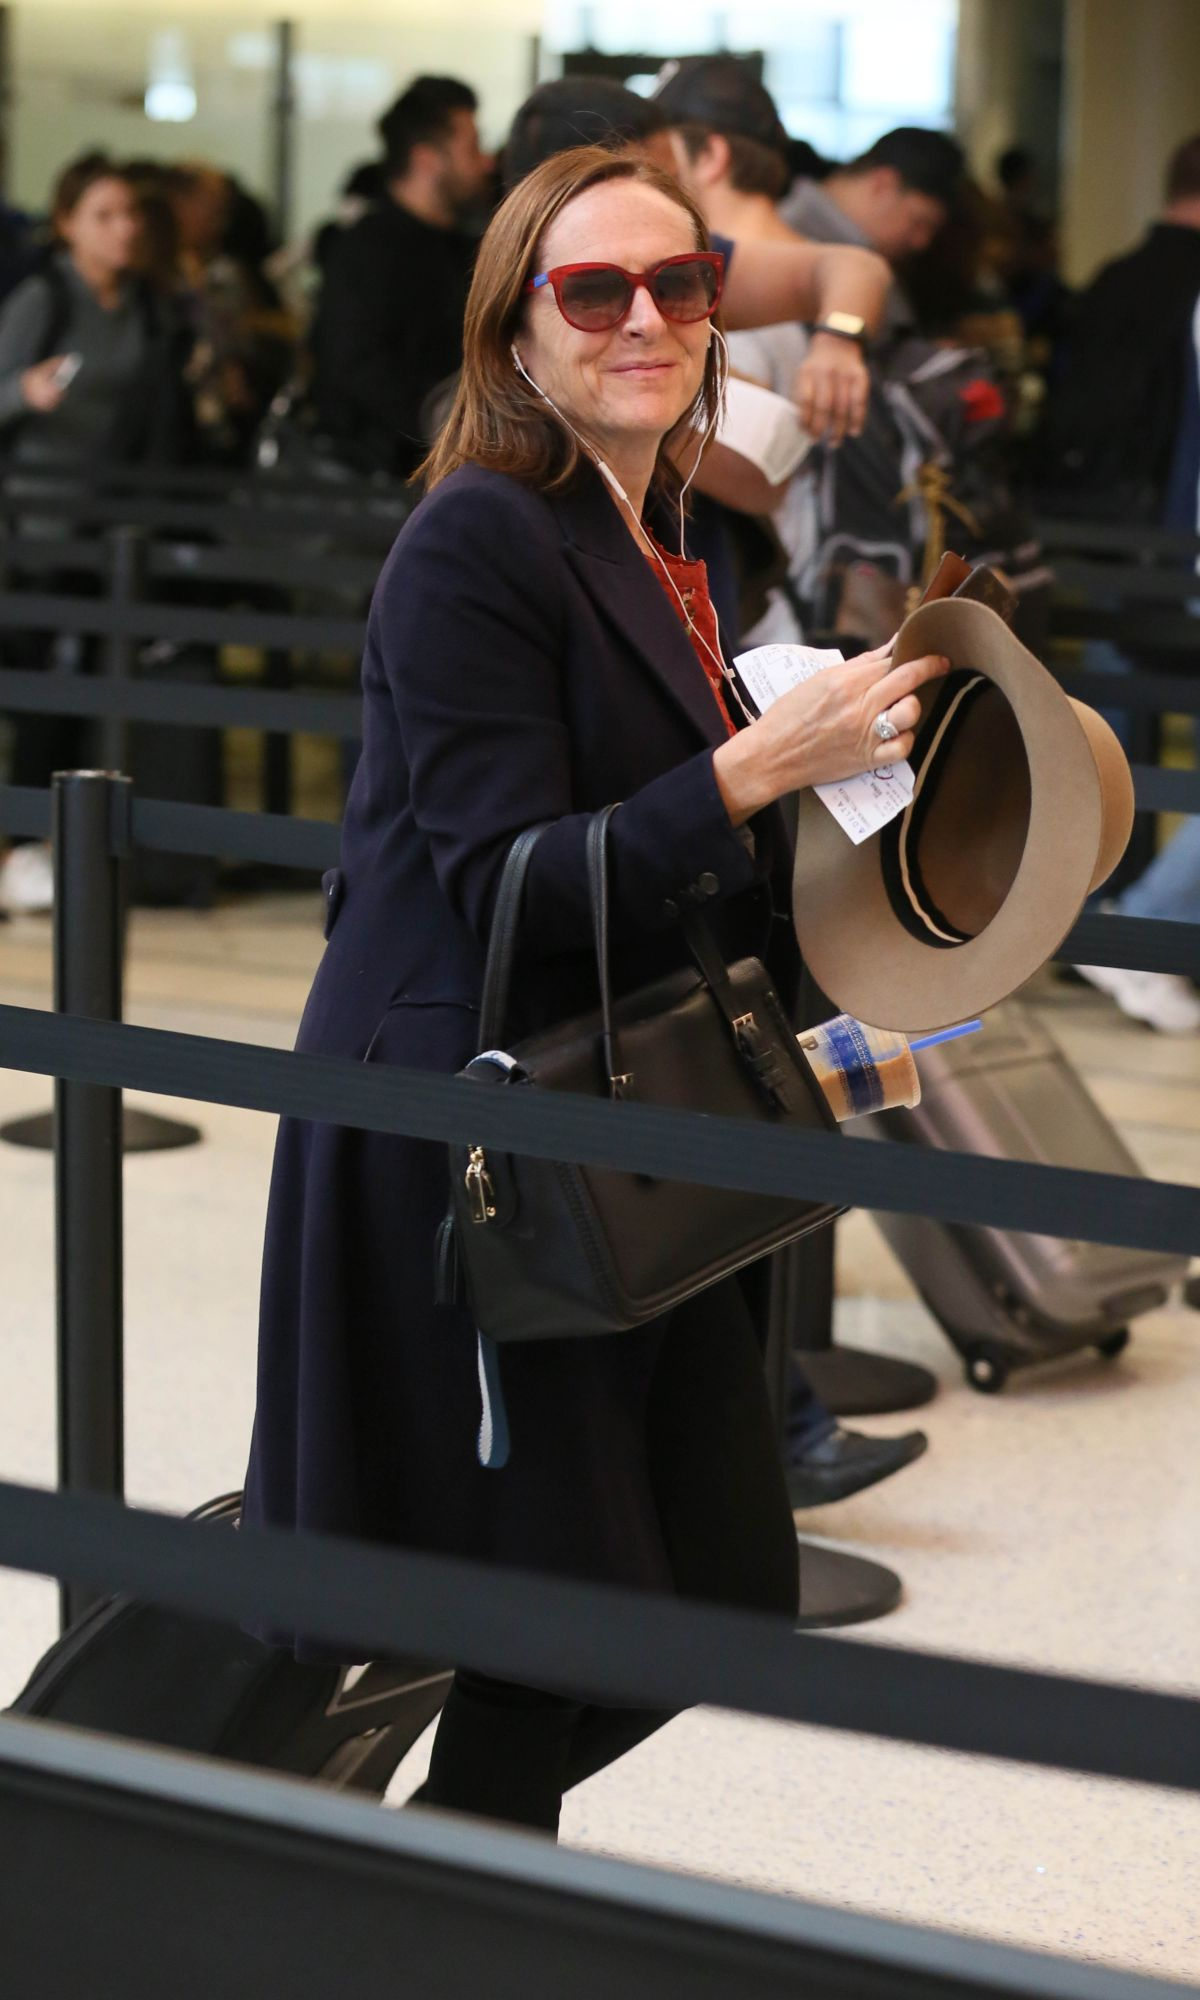 MOLLY SHANNON at LAX Airport in Los Angeles 03/08/2017